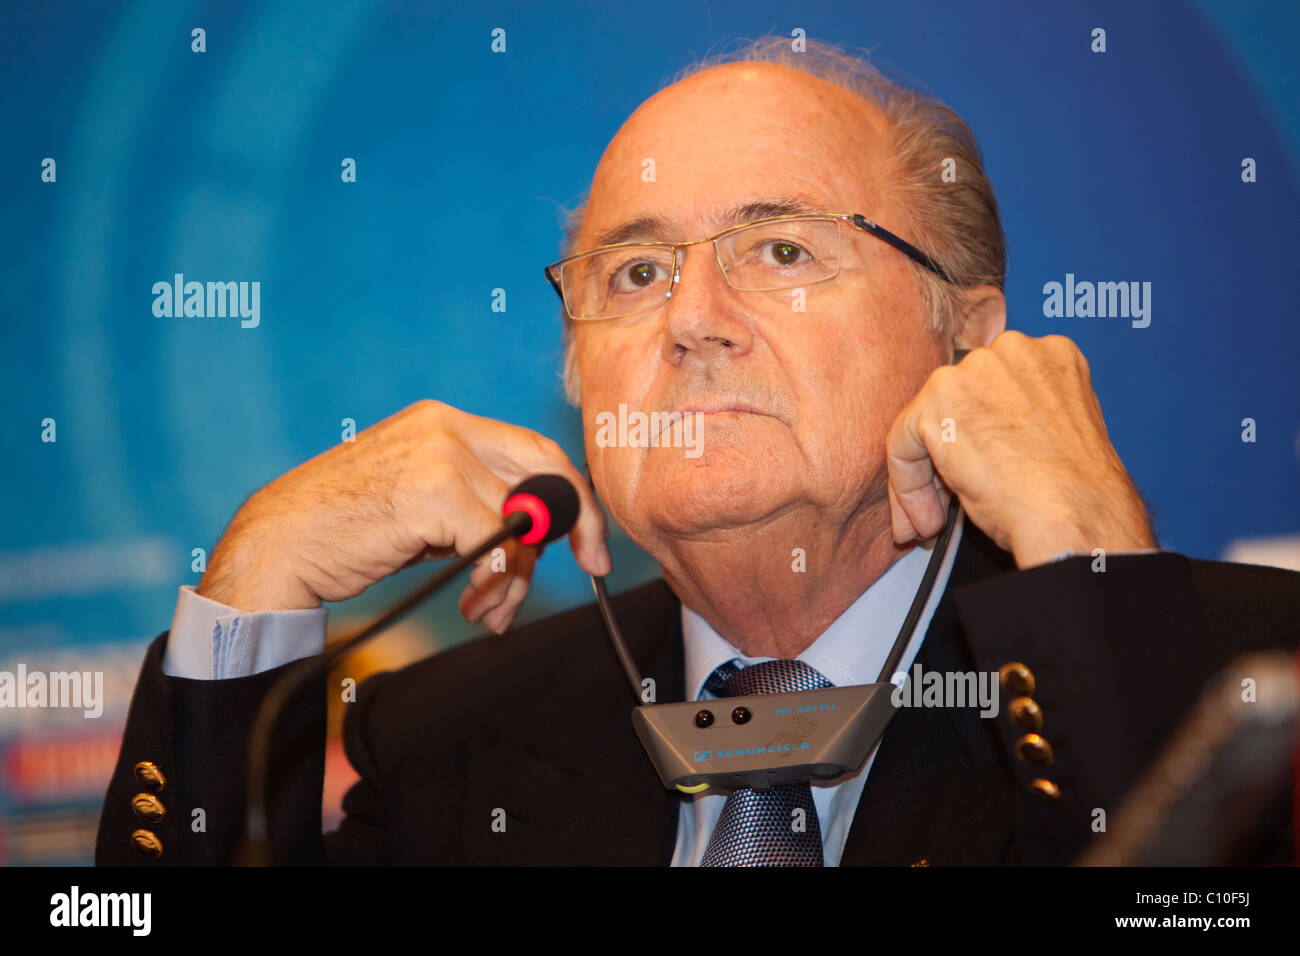 FIFA President Sepp Blatter listens to a question at a press conference ahead of the 2009 U-20 World Cup soccer - Stock Image